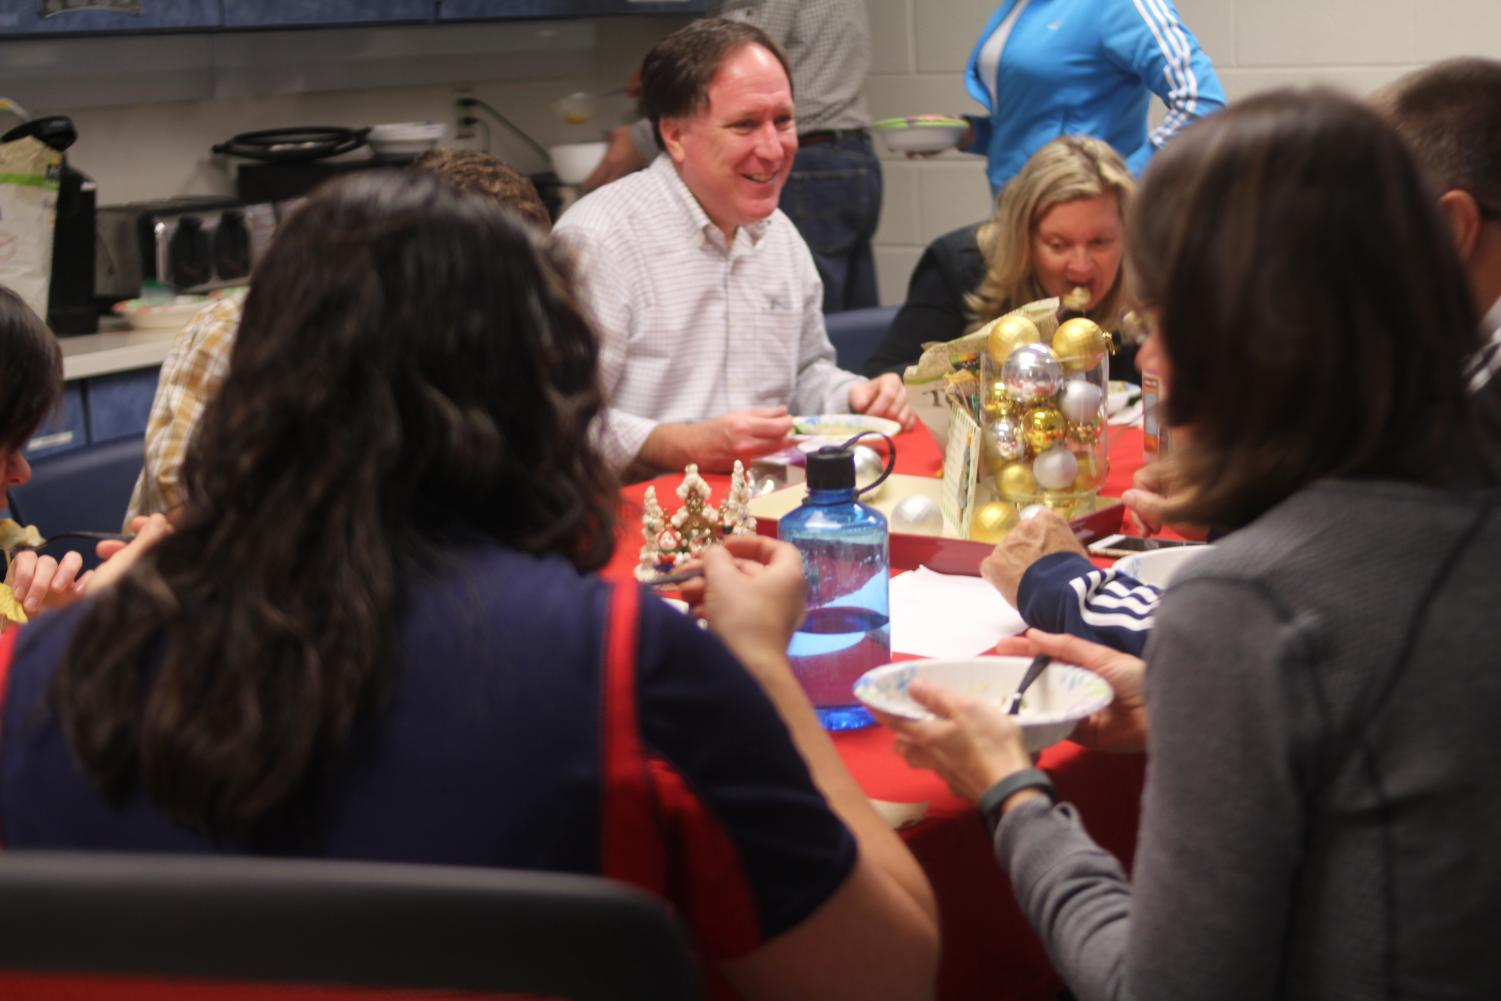 Soup Club members share soup at a weekly meeting. The meeting took place on Dec. 1 during lunch.